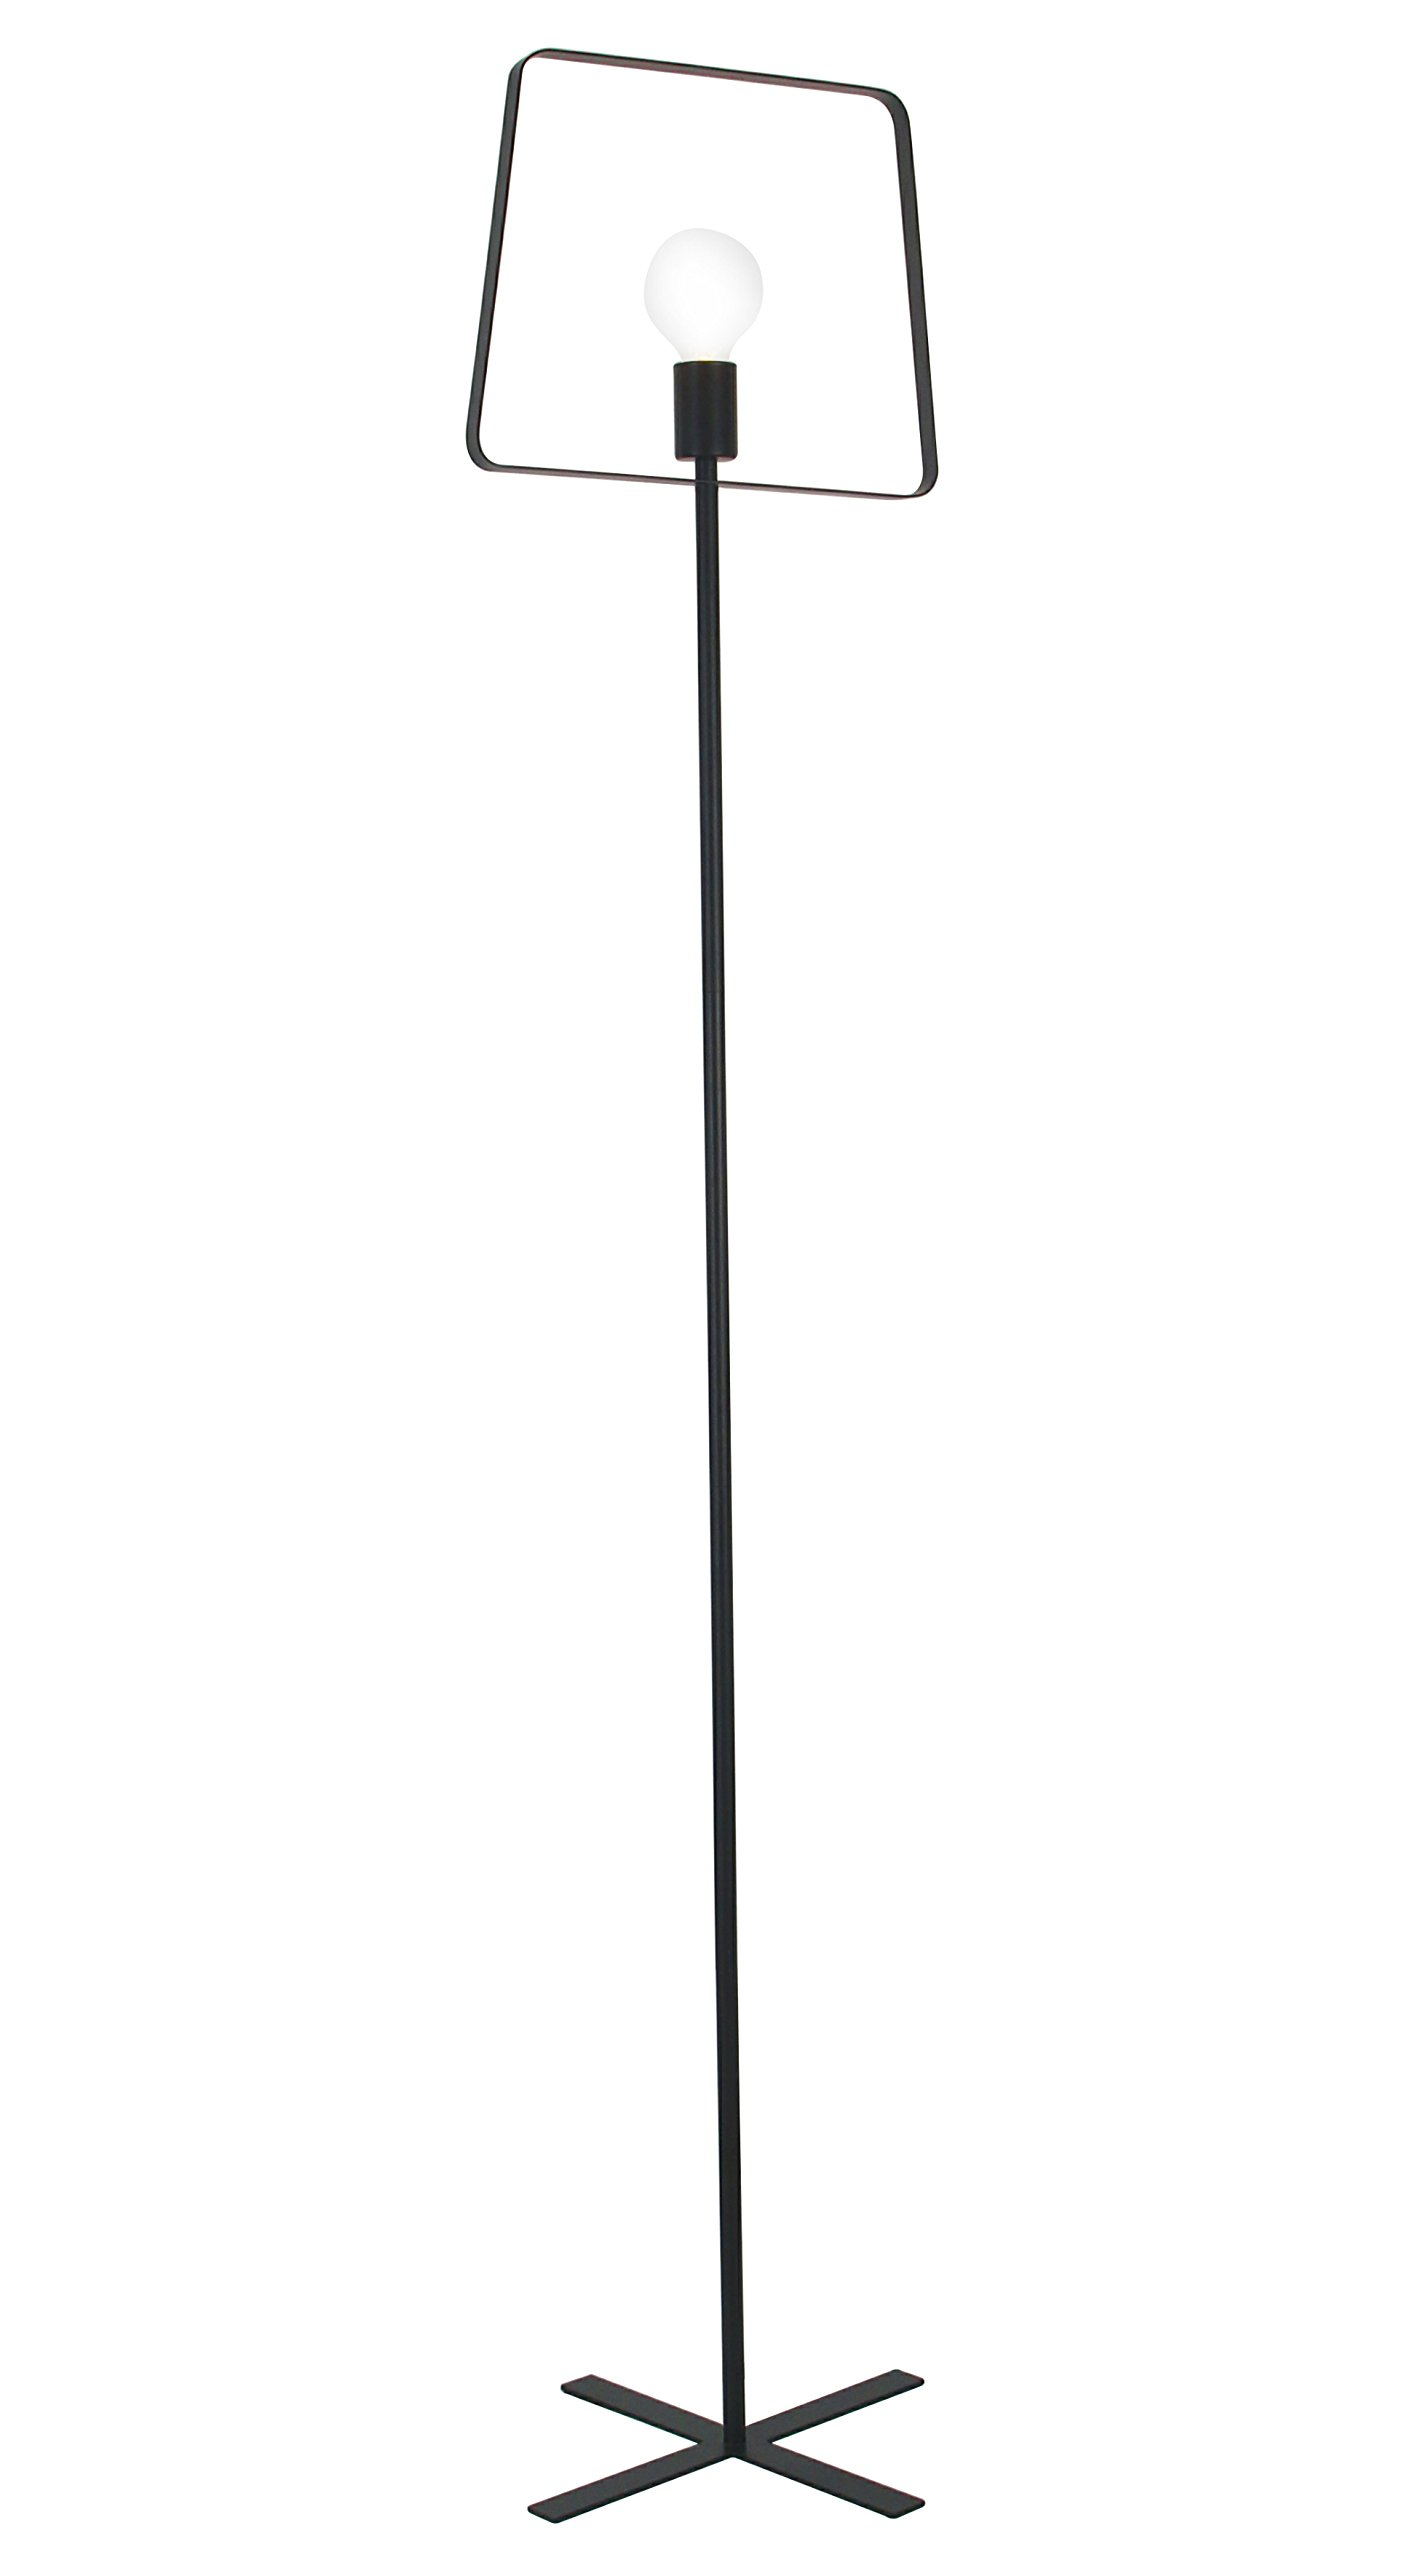 "Industrial Led Tall Floor Lamp for Living Room (Black) - ★【DIMENSIONS】 Shade Size: 65"" high x 13.8"" wide; Base Size: 13.8"" high x13.8"" wide base. On/off rotary switch on the cord attached with the base. Includes non-dimmable 4 watt medium base LED bulb; 3000K color temperature; 750 lumens; comparable to a 60 watt incandescent bulb. ★【EYE PROTECTION & USE】Perfect for reading, working or doing intricate craftwork. A must-have addition to you home or office. This lamp provides natural full spectrum daylight hues, even brightening rooms that have minimal sun exposure. ★【Irregular Geometric Design】Classic black metal frame, modern geometric lines and simple Led bulb, all make a perfect floor lamp and pair perfectly to add contemporary elegance and vintage industrial charm to your home décor. - living-room-decor, living-room, floor-lamps - 61MWFSpMUoL -"